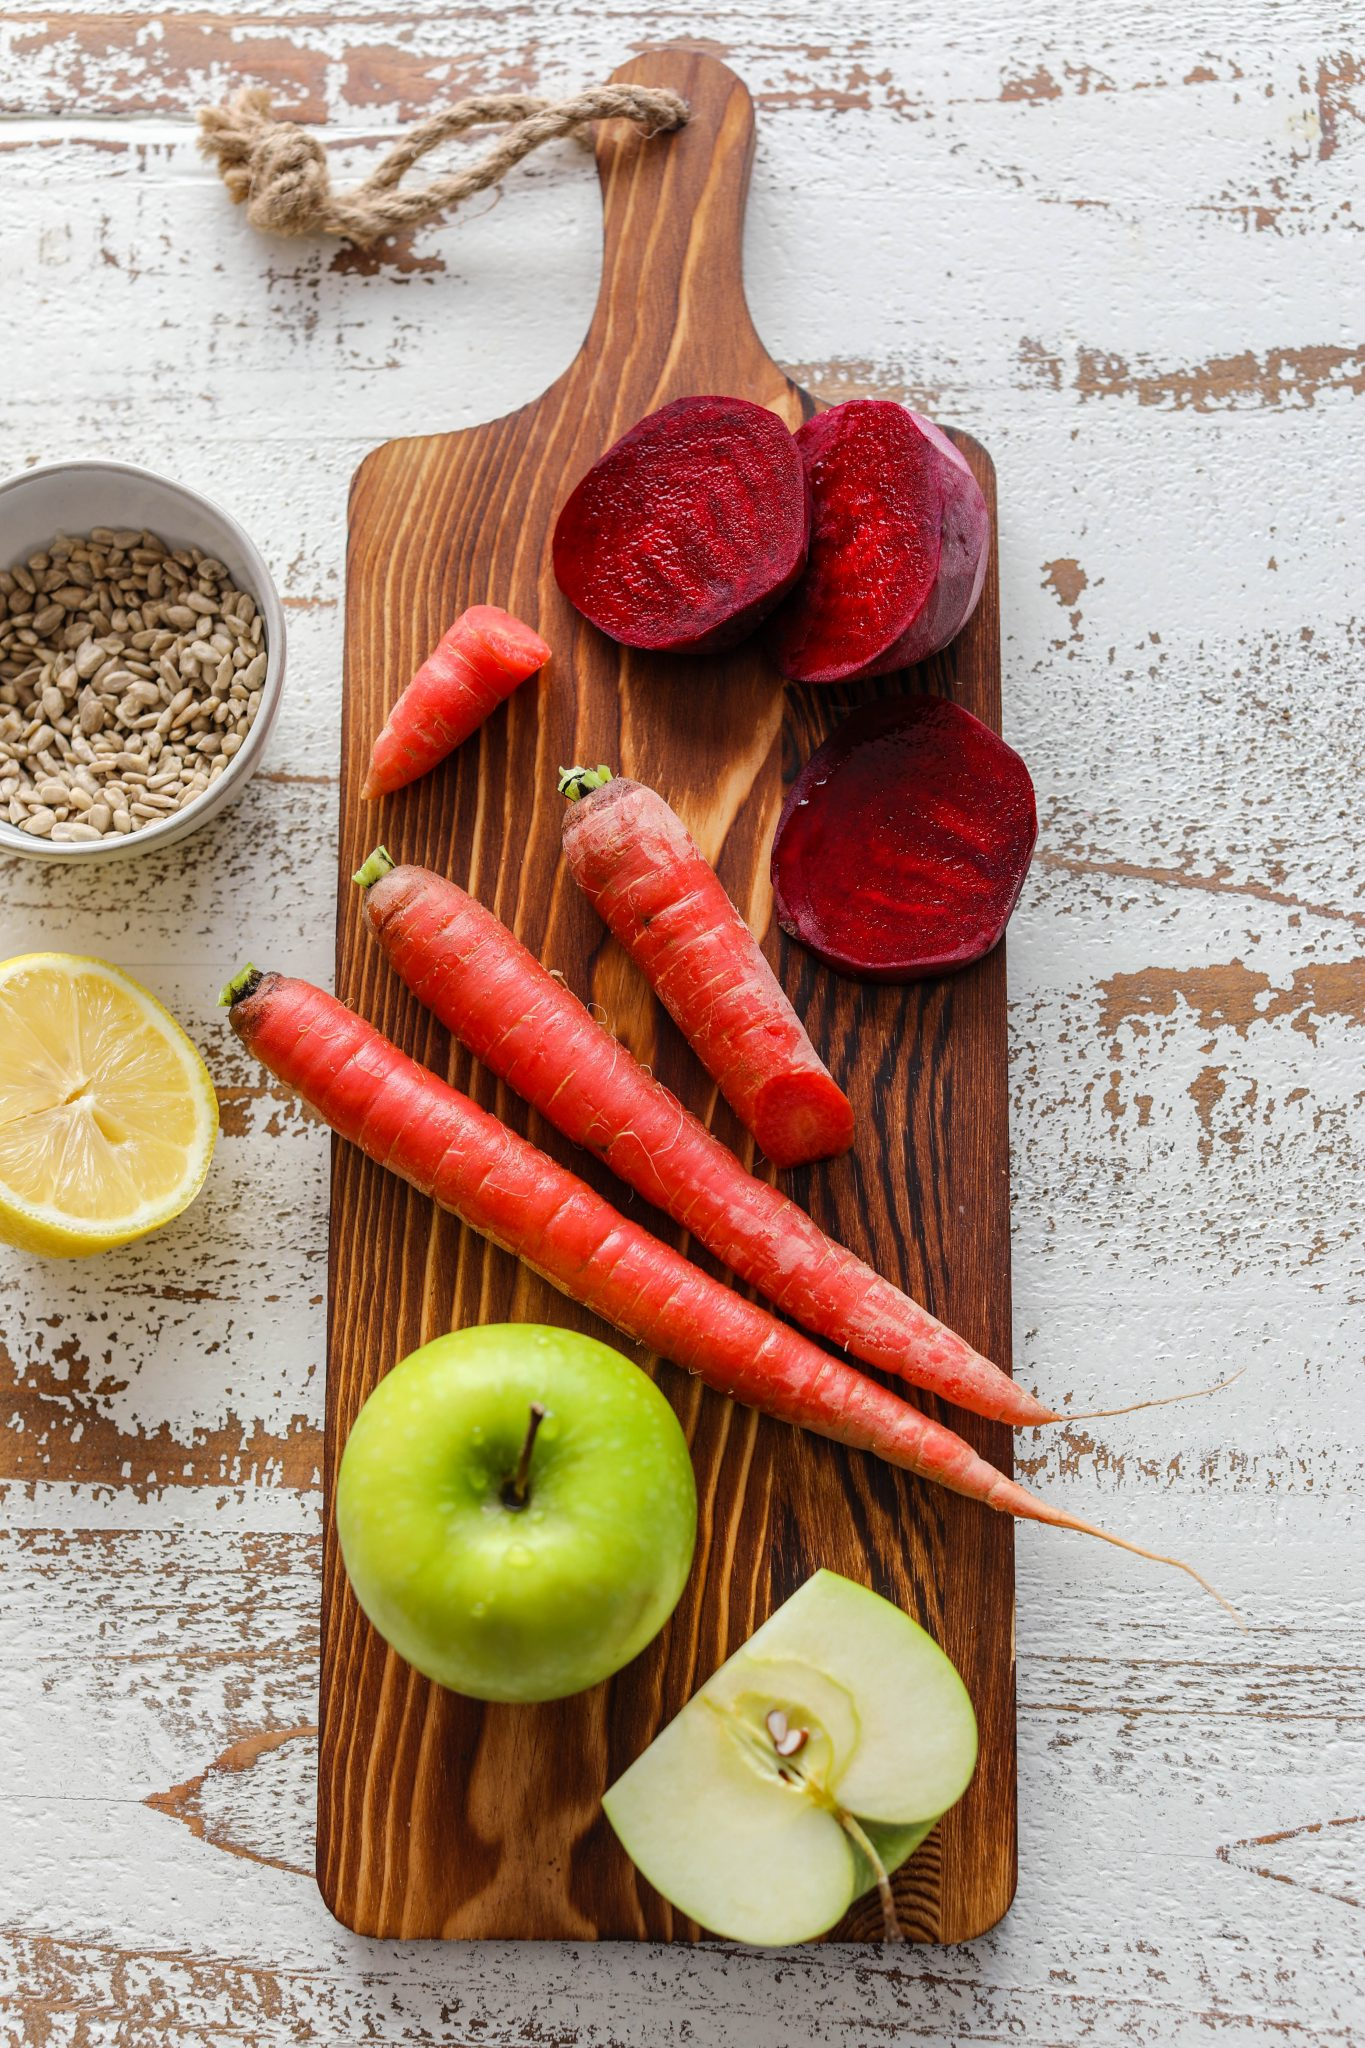 Red Carrot, Apple, & Beet Detox Salad Ingredients